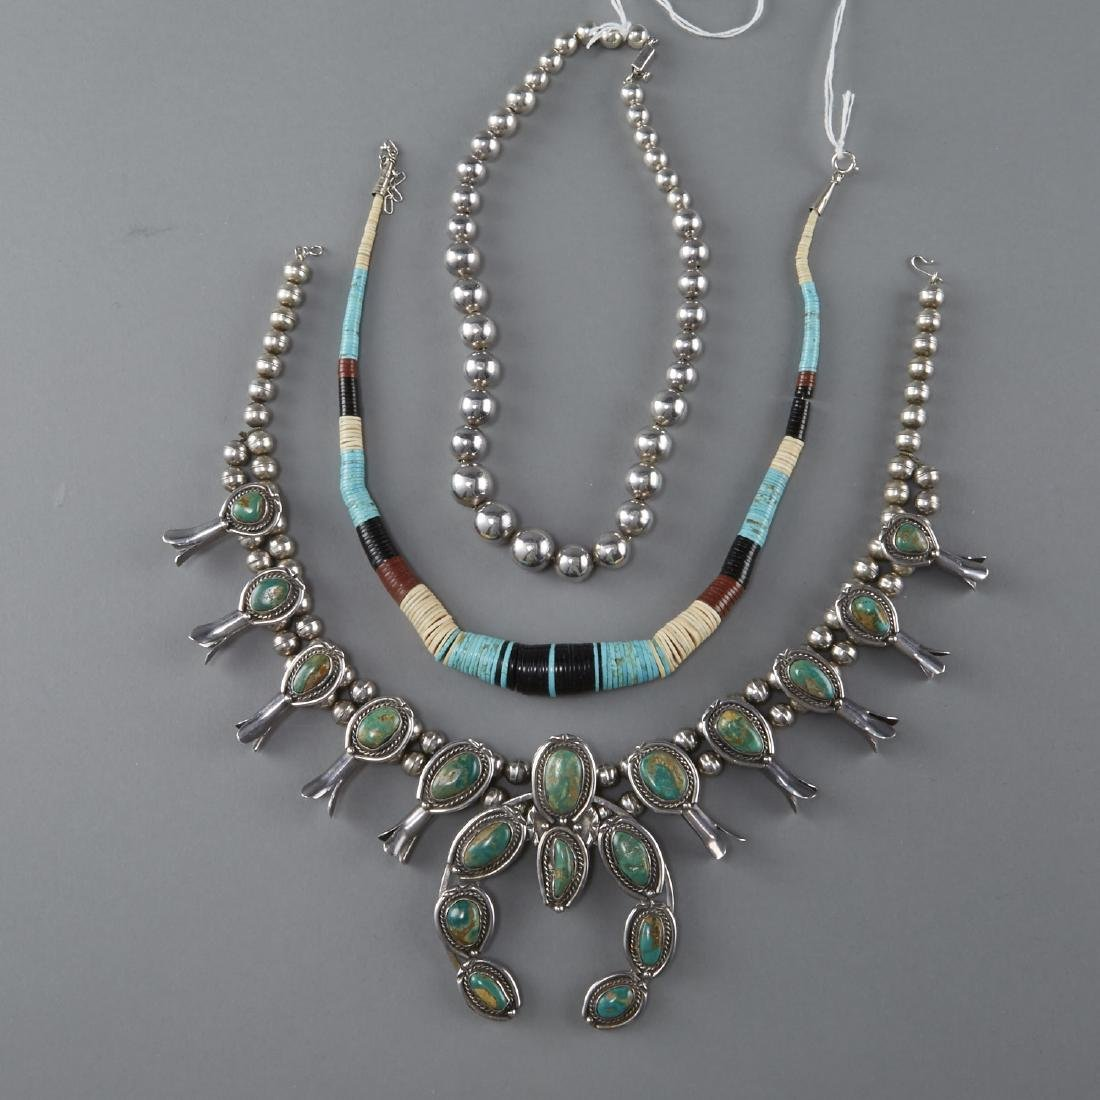 3 Necklaces Squash Blossom, Silver, Turquoise